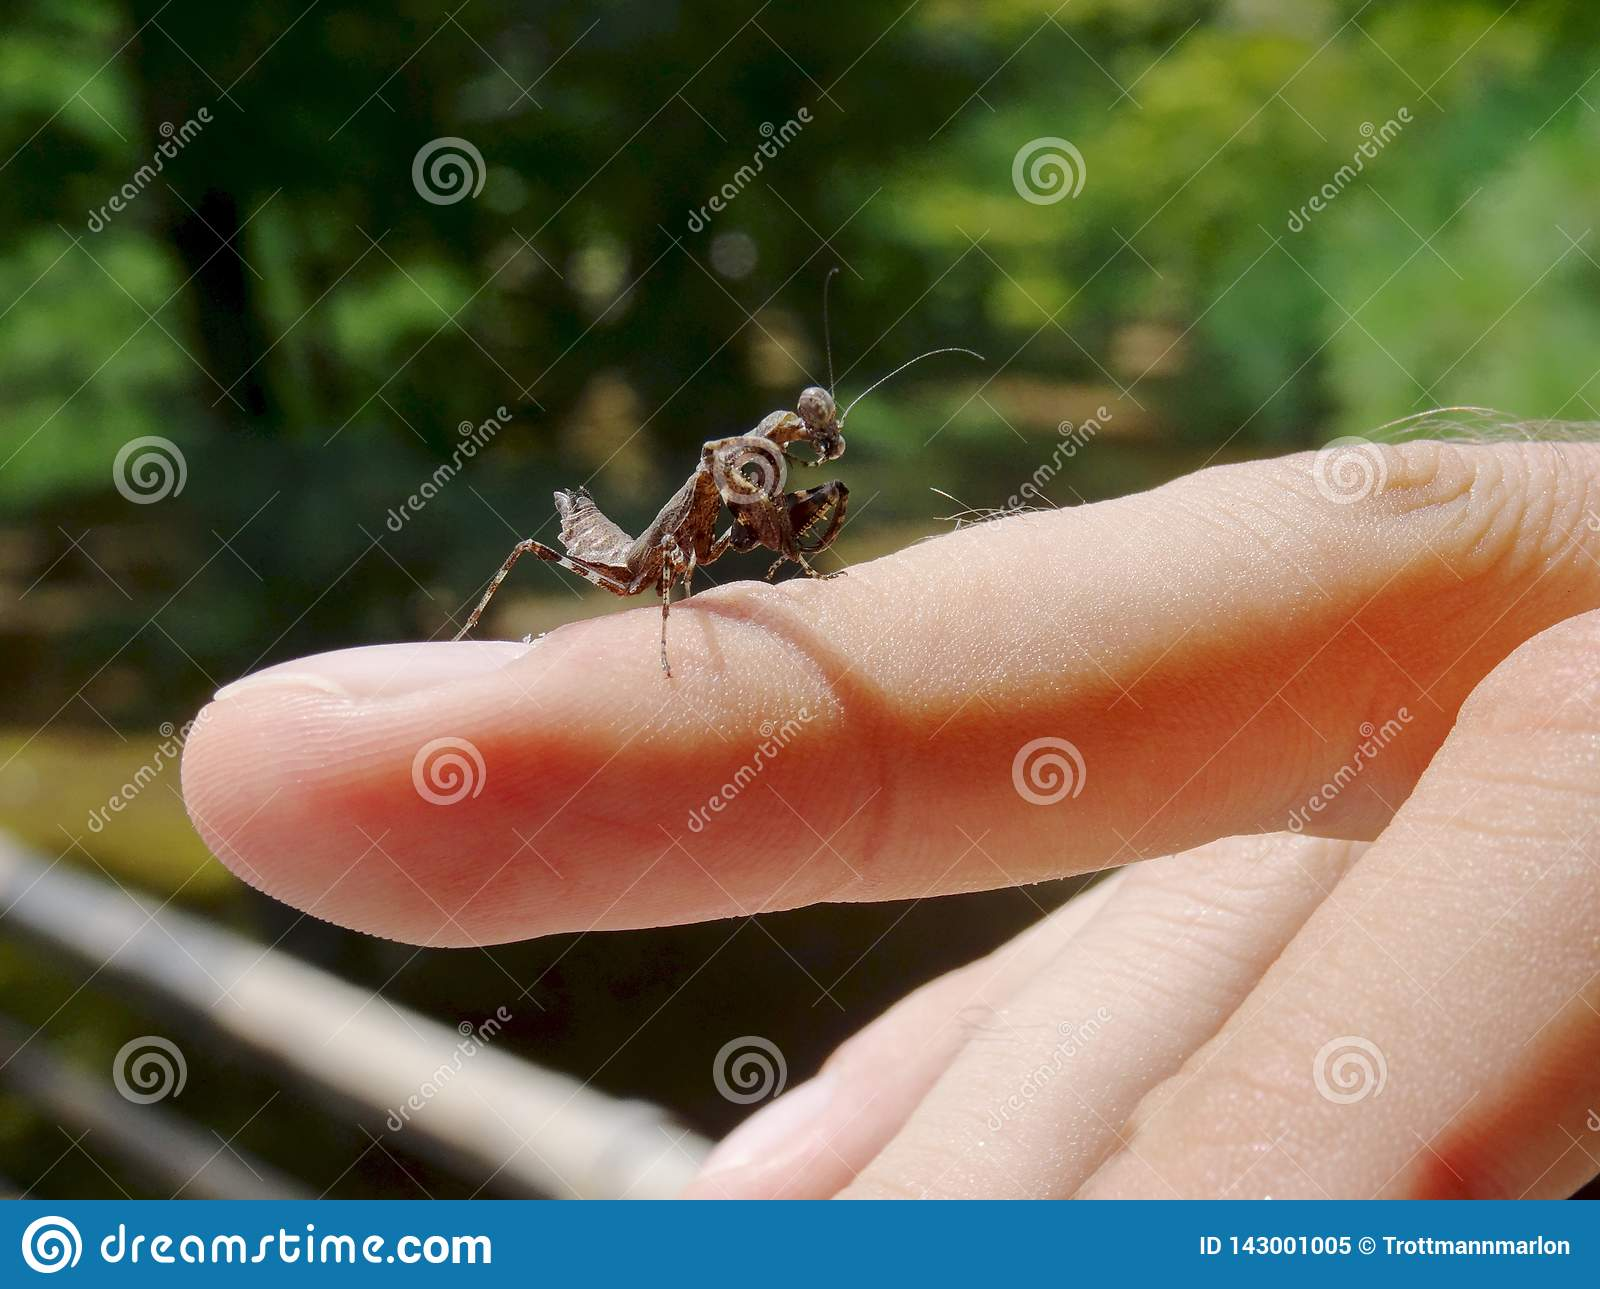 Close up of a black baby Praying Mantis walking on a finger